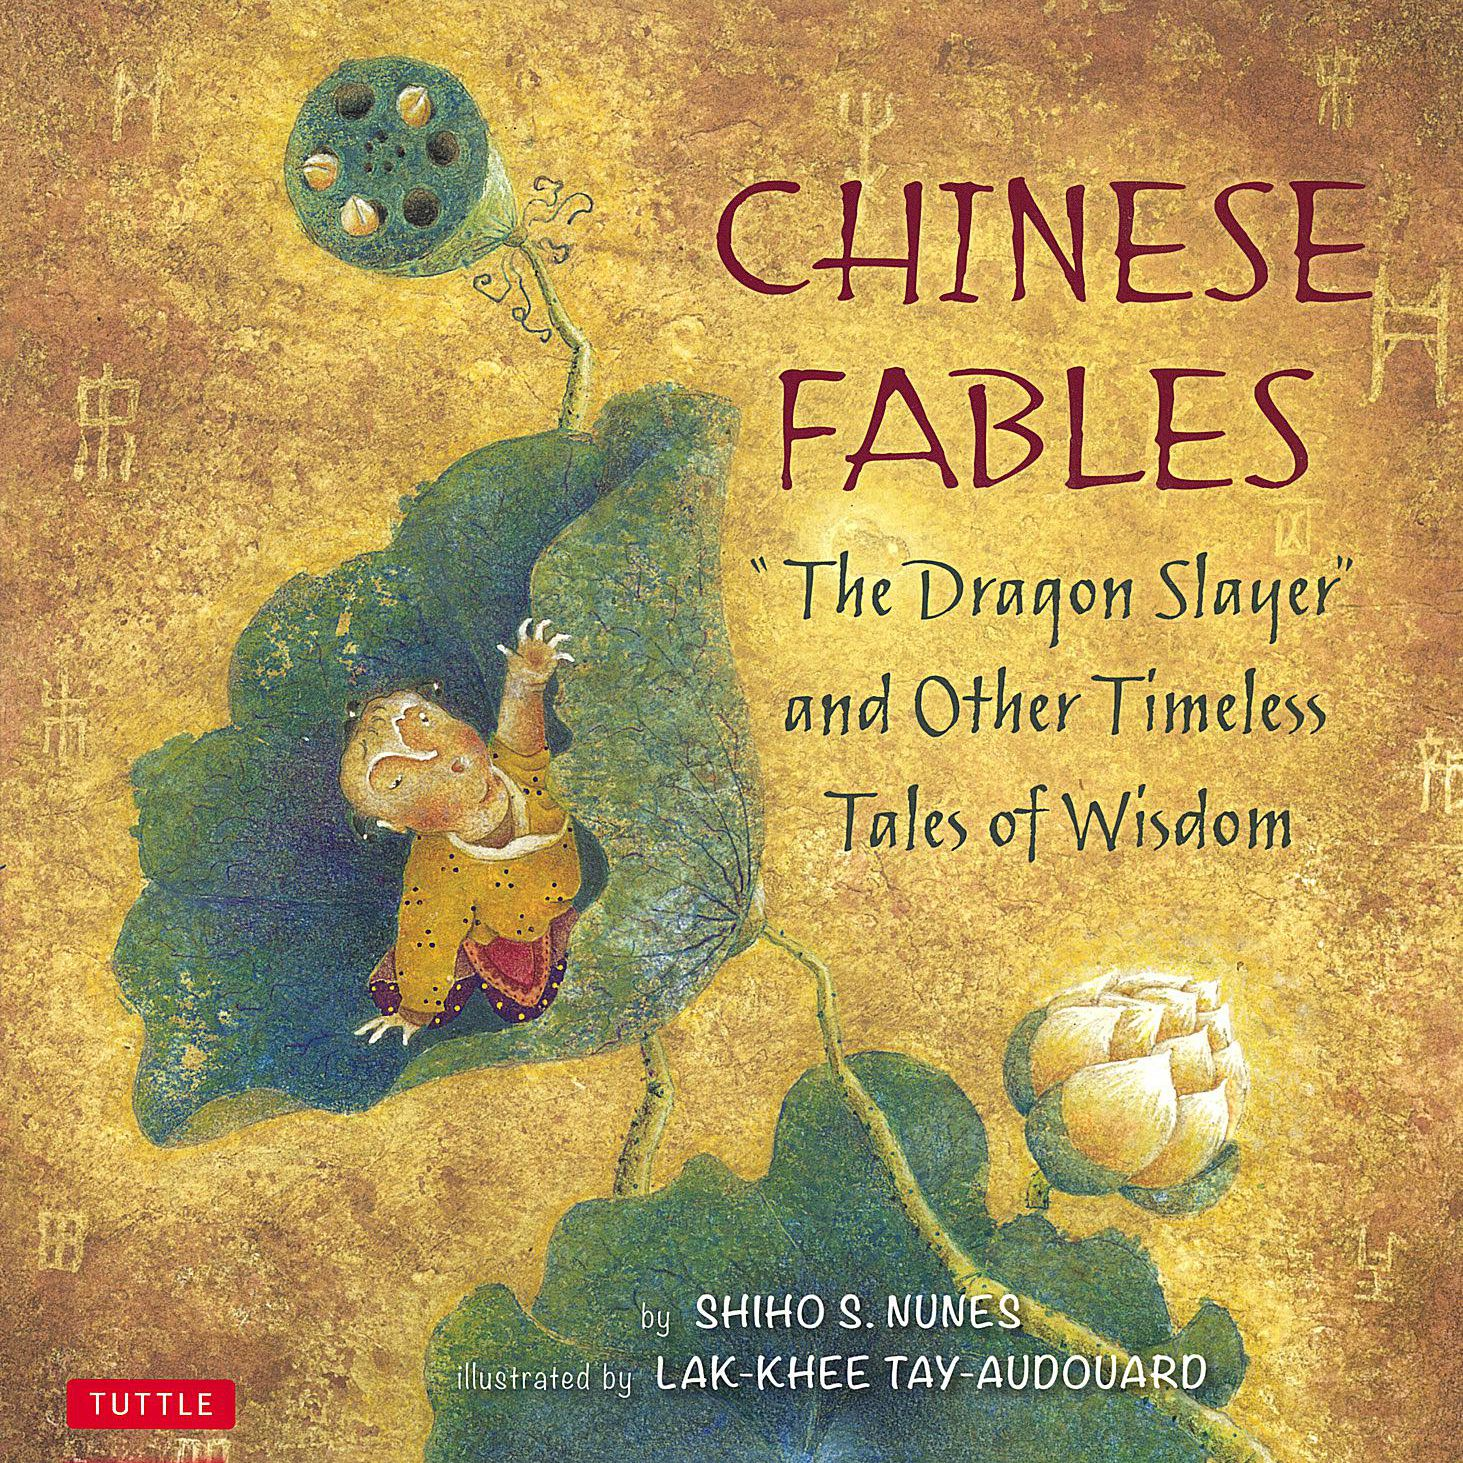 Best Children's Stories From Asia - Short Story Collections